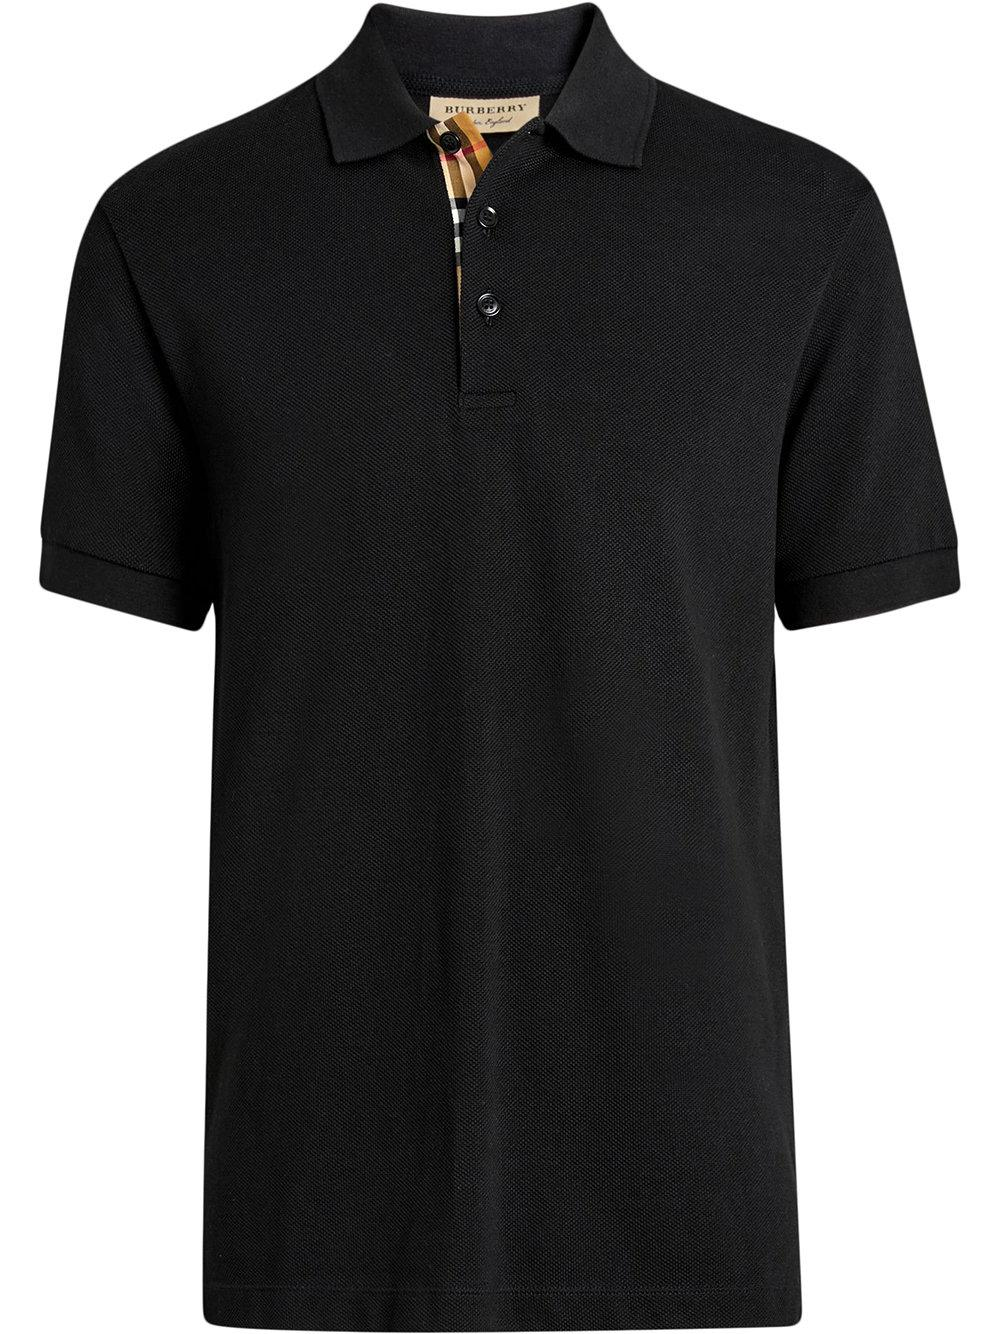 45c6219cce Burberry Polo Shirts Mens – EDGE Engineering and Consulting Limited